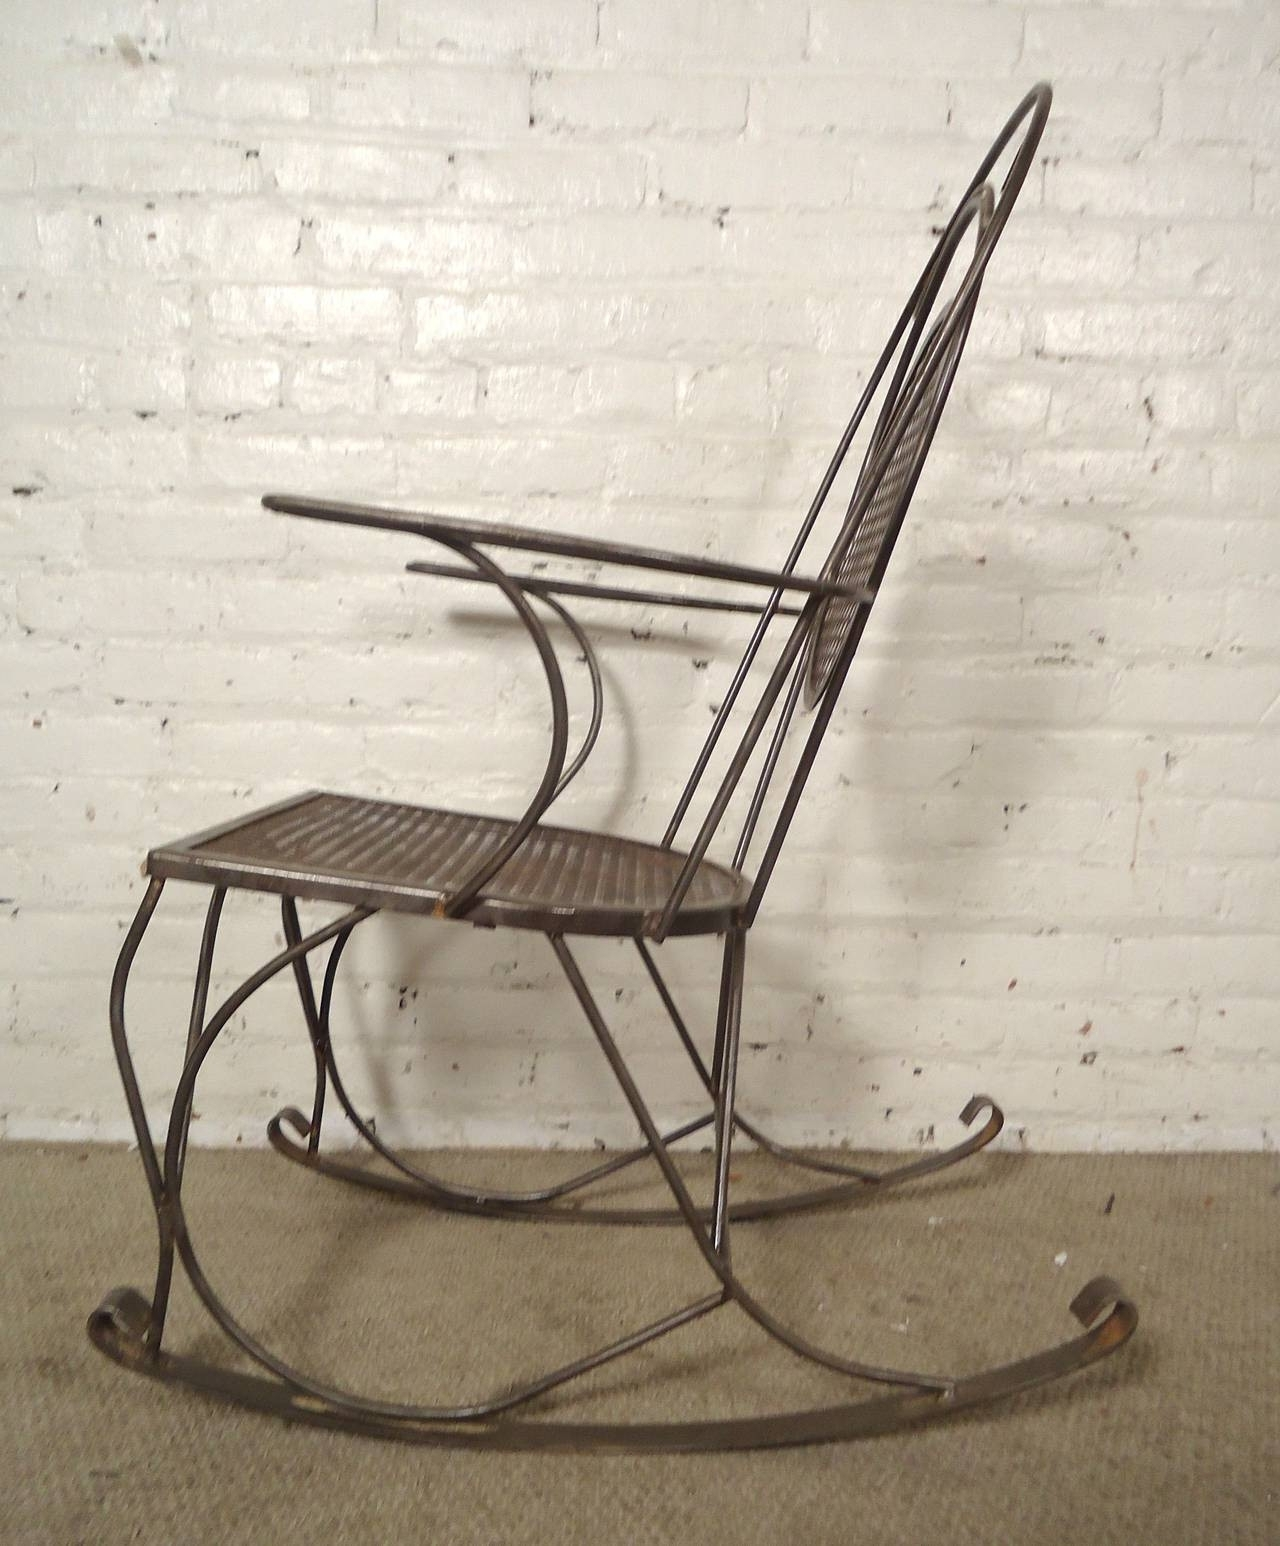 Vintage Metal Outdoor Rocking Chairs Outdoor Designs Design Of Regarding Most Recently Released Outdoor Patio Metal Rocking Chairs (Gallery 11 of 15)